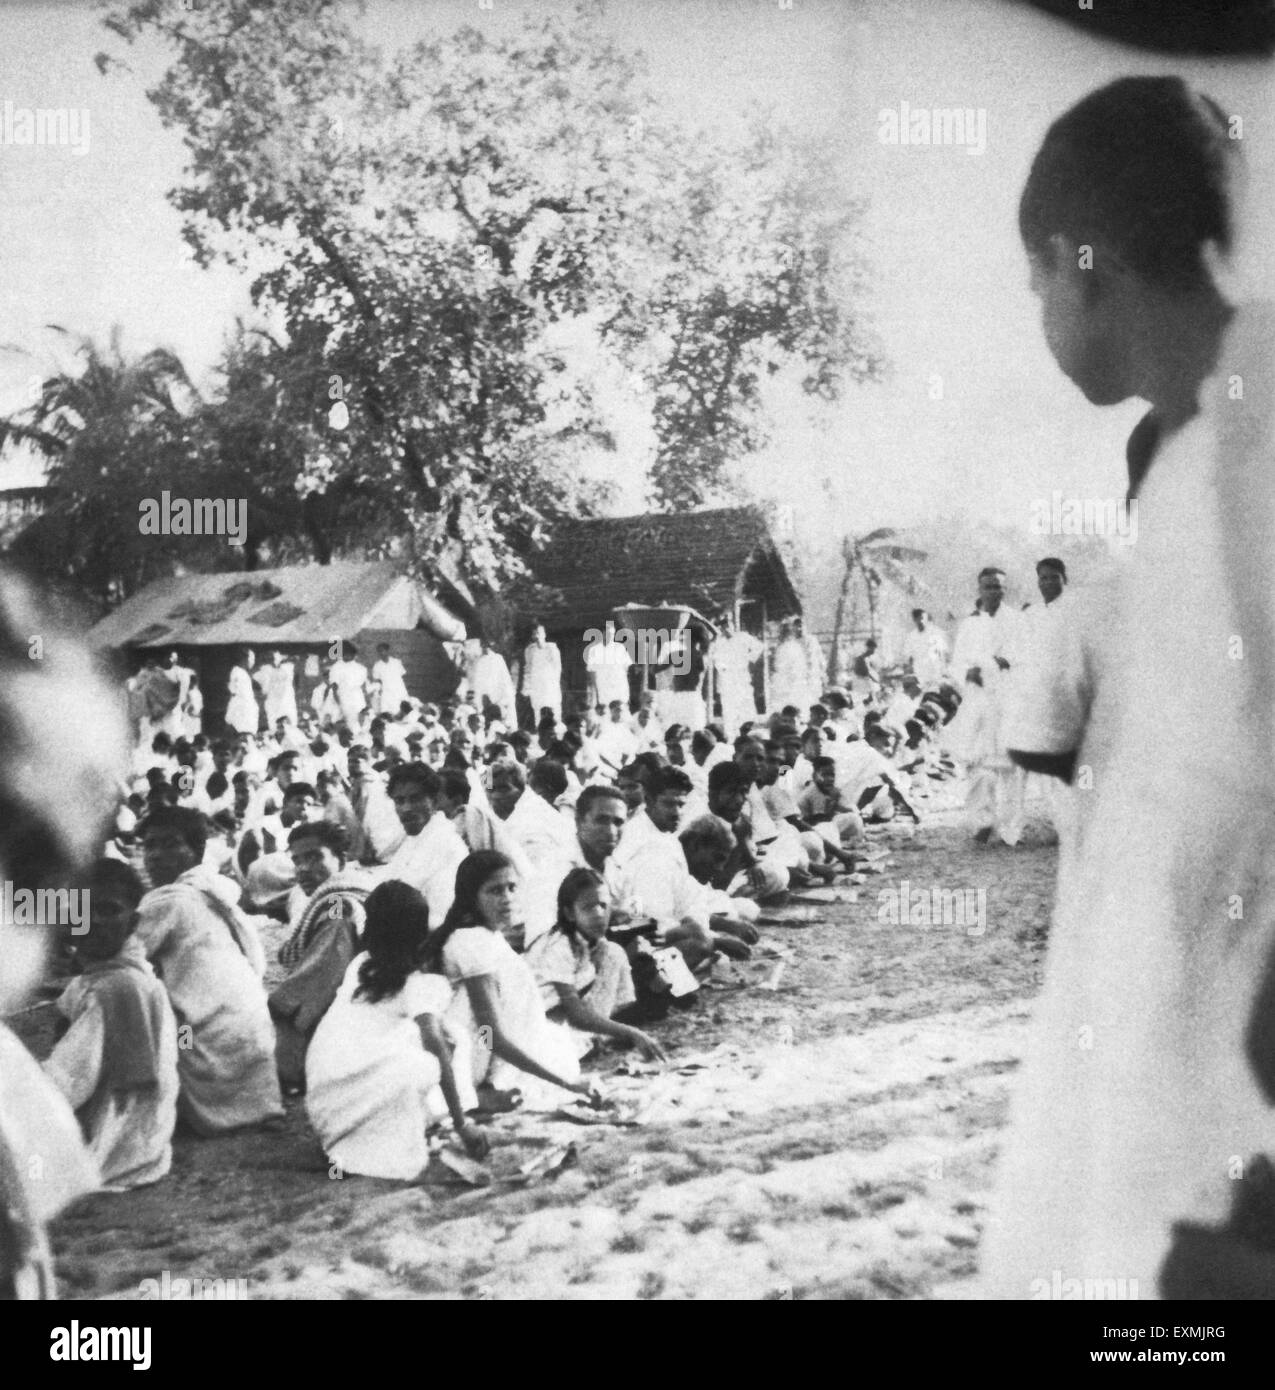 People waiting to meet Mahatma Gandhi after the riots between Hindus and Muslims in Chandipur ; Noakhali East Bengal - Stock Image